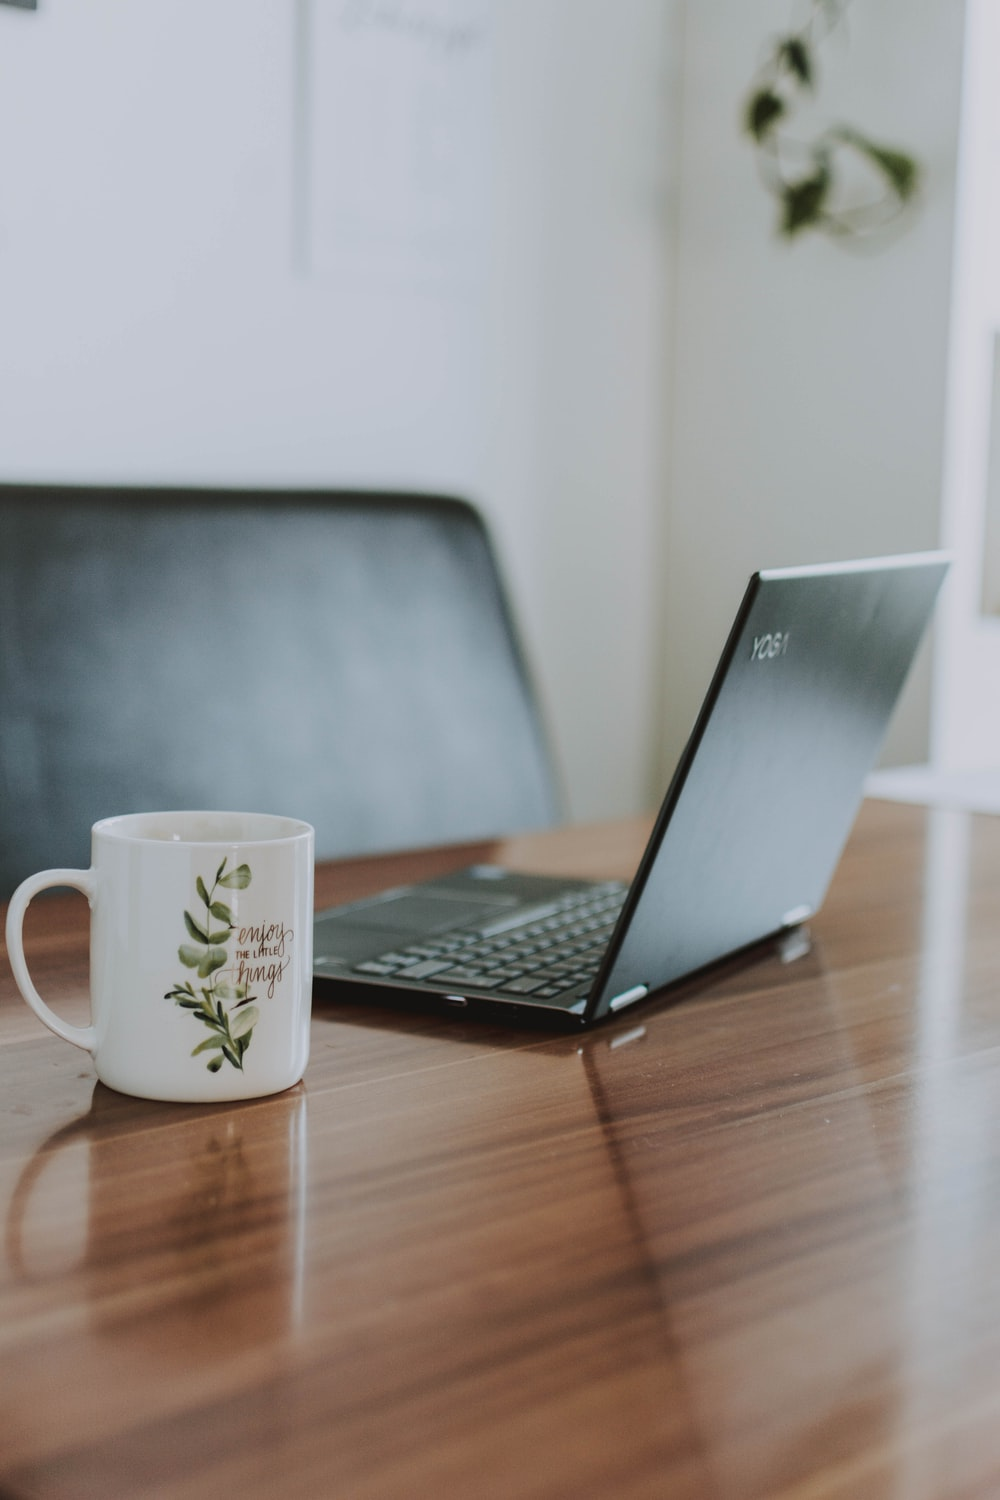 Coffee Laptop Pictures Download Images on Unsplash 1000x1500